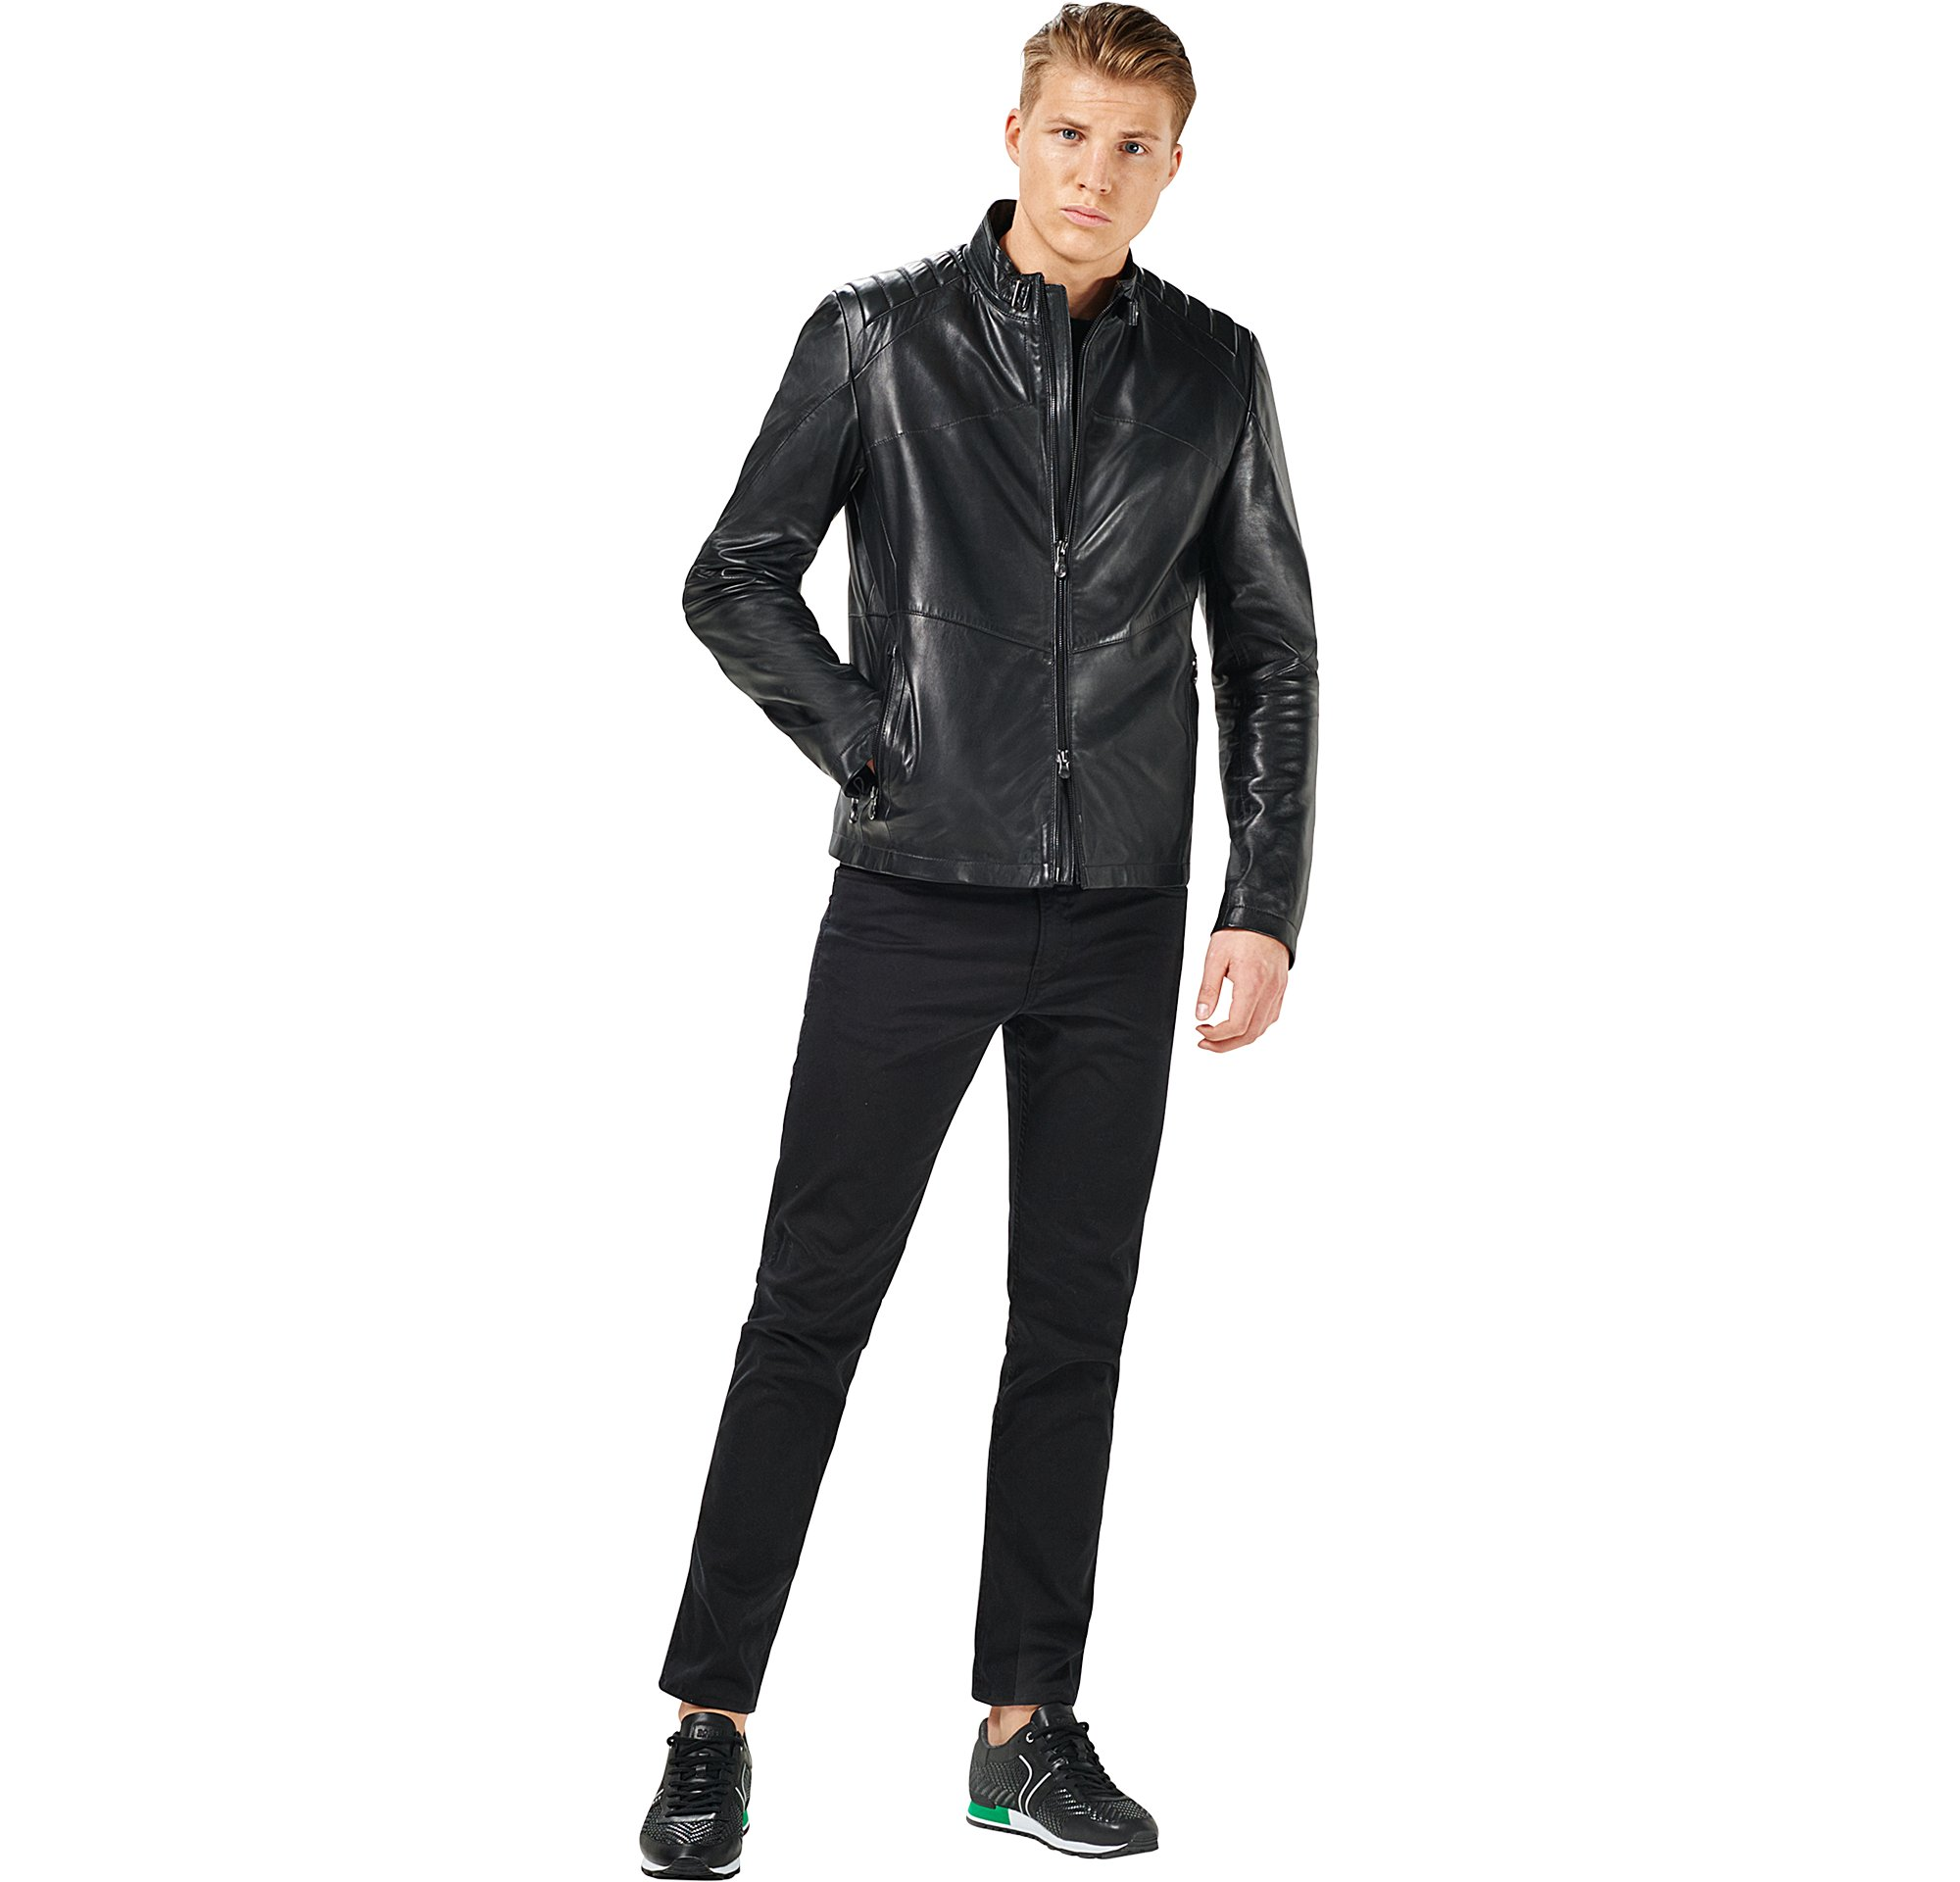 Leather jacket, knitwear, jeans and shoes by BOSS Green Menswear